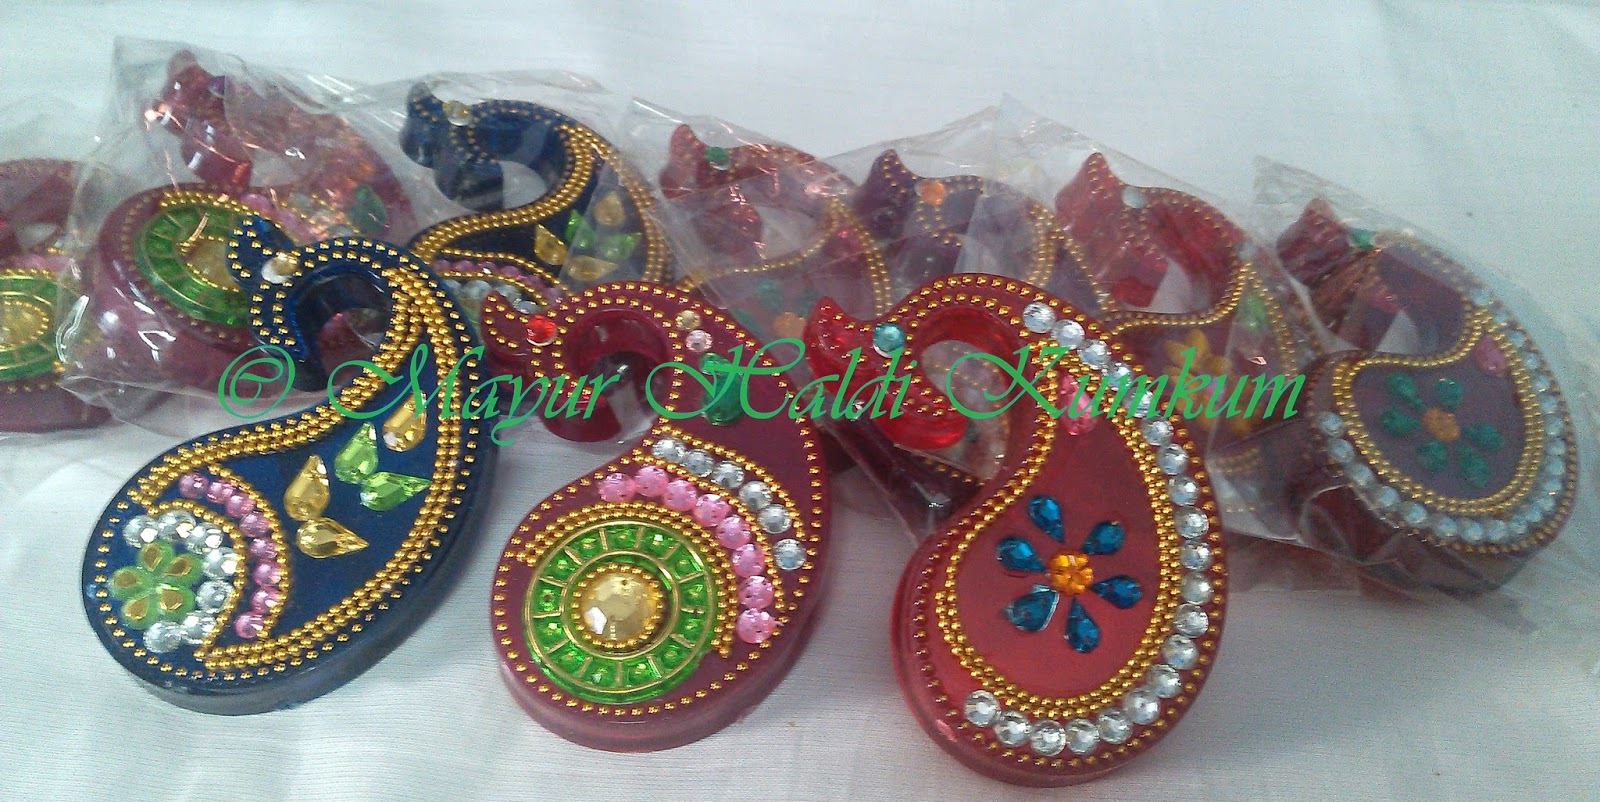 Mayur arts crafts 1 1 16 2 1 16 - Gifts for gruhapravesam ...